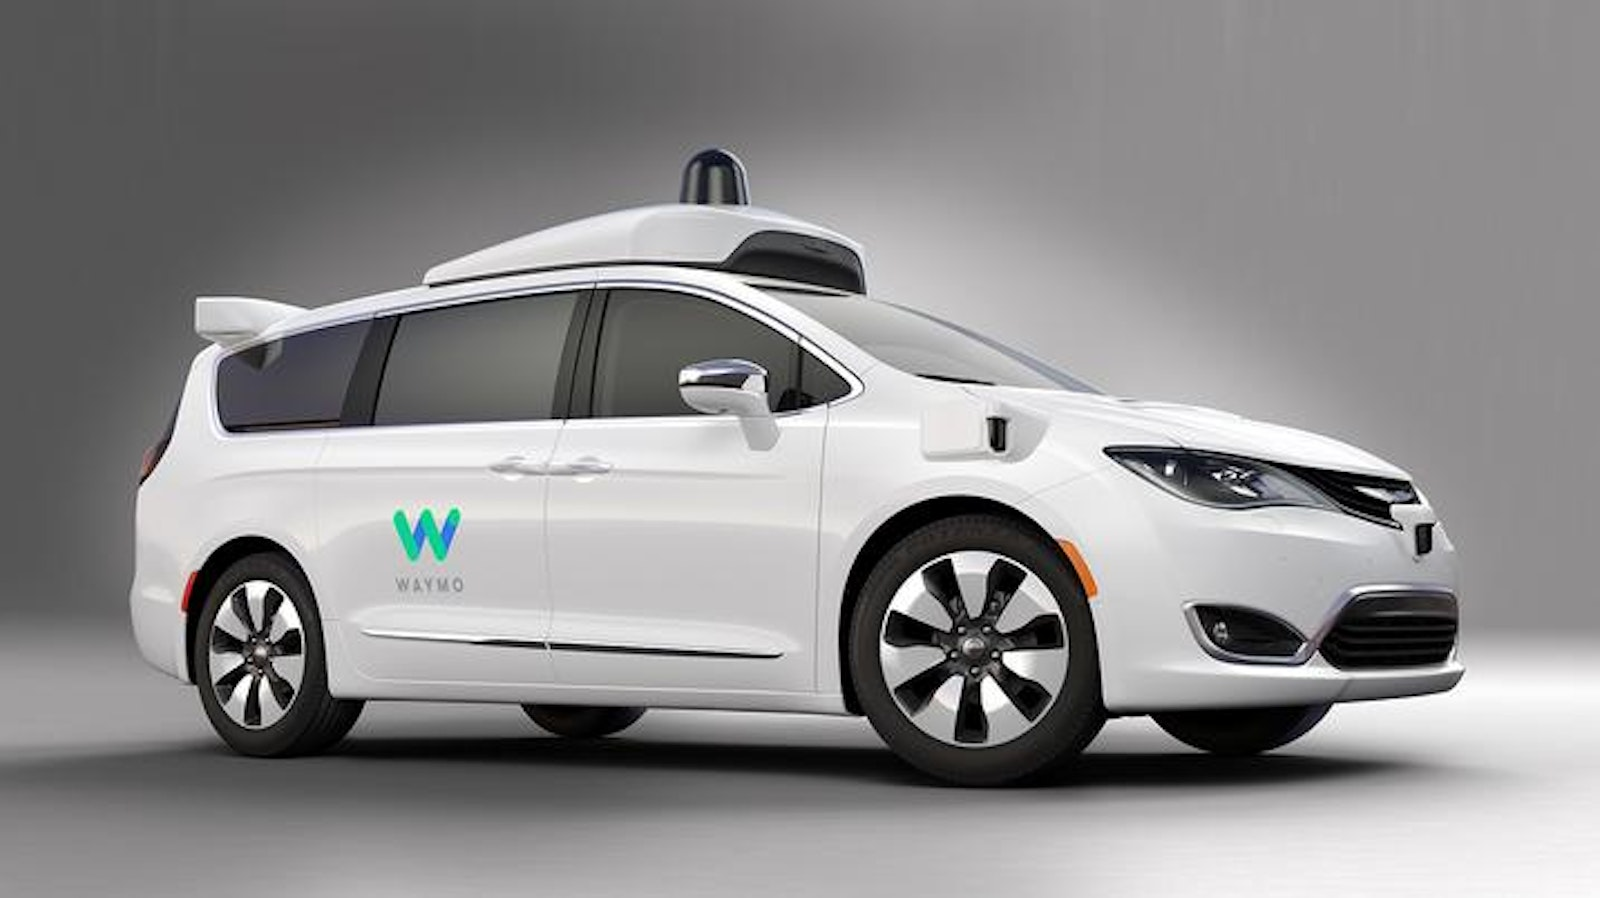 Fiat Chrysler Automobiles Us Llc Fca And Waymo Have Announced They Will Expand Their Partnership With An Agreement To Add Up 62 000 Pacifica